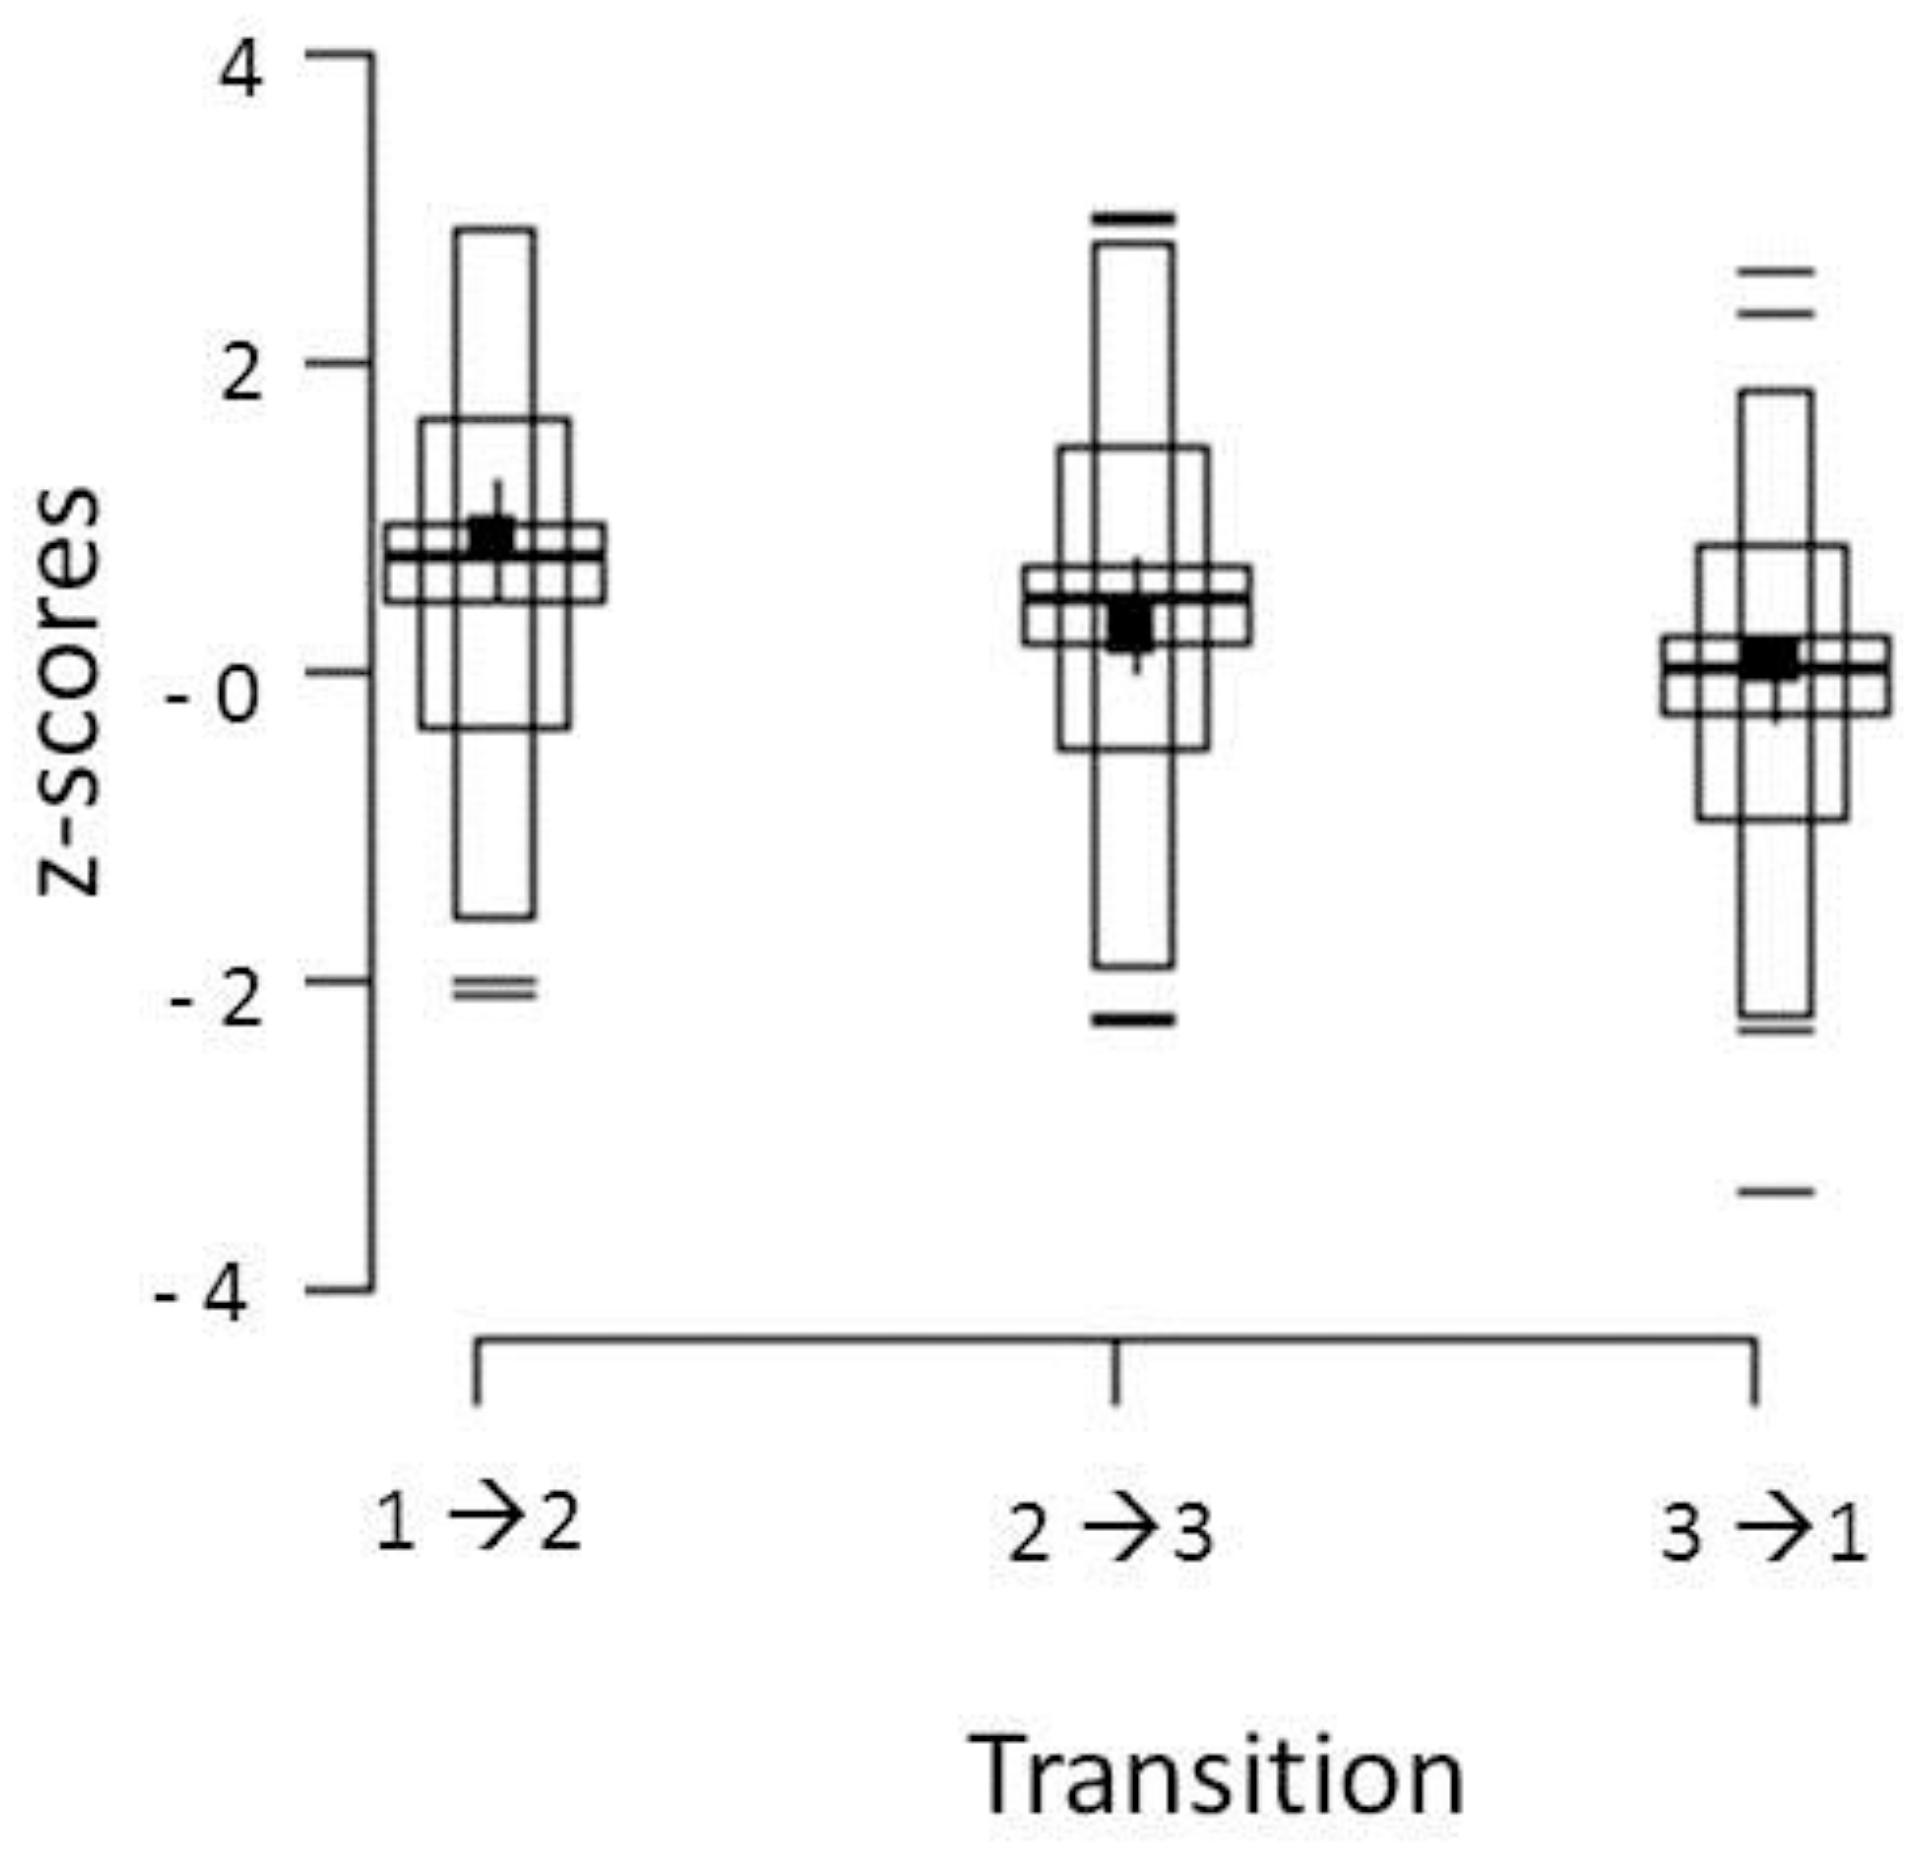 Frontiers Evidence For Sequential Performance Effects In If The Motor Throws Opposite Way To Switches Toggle Position